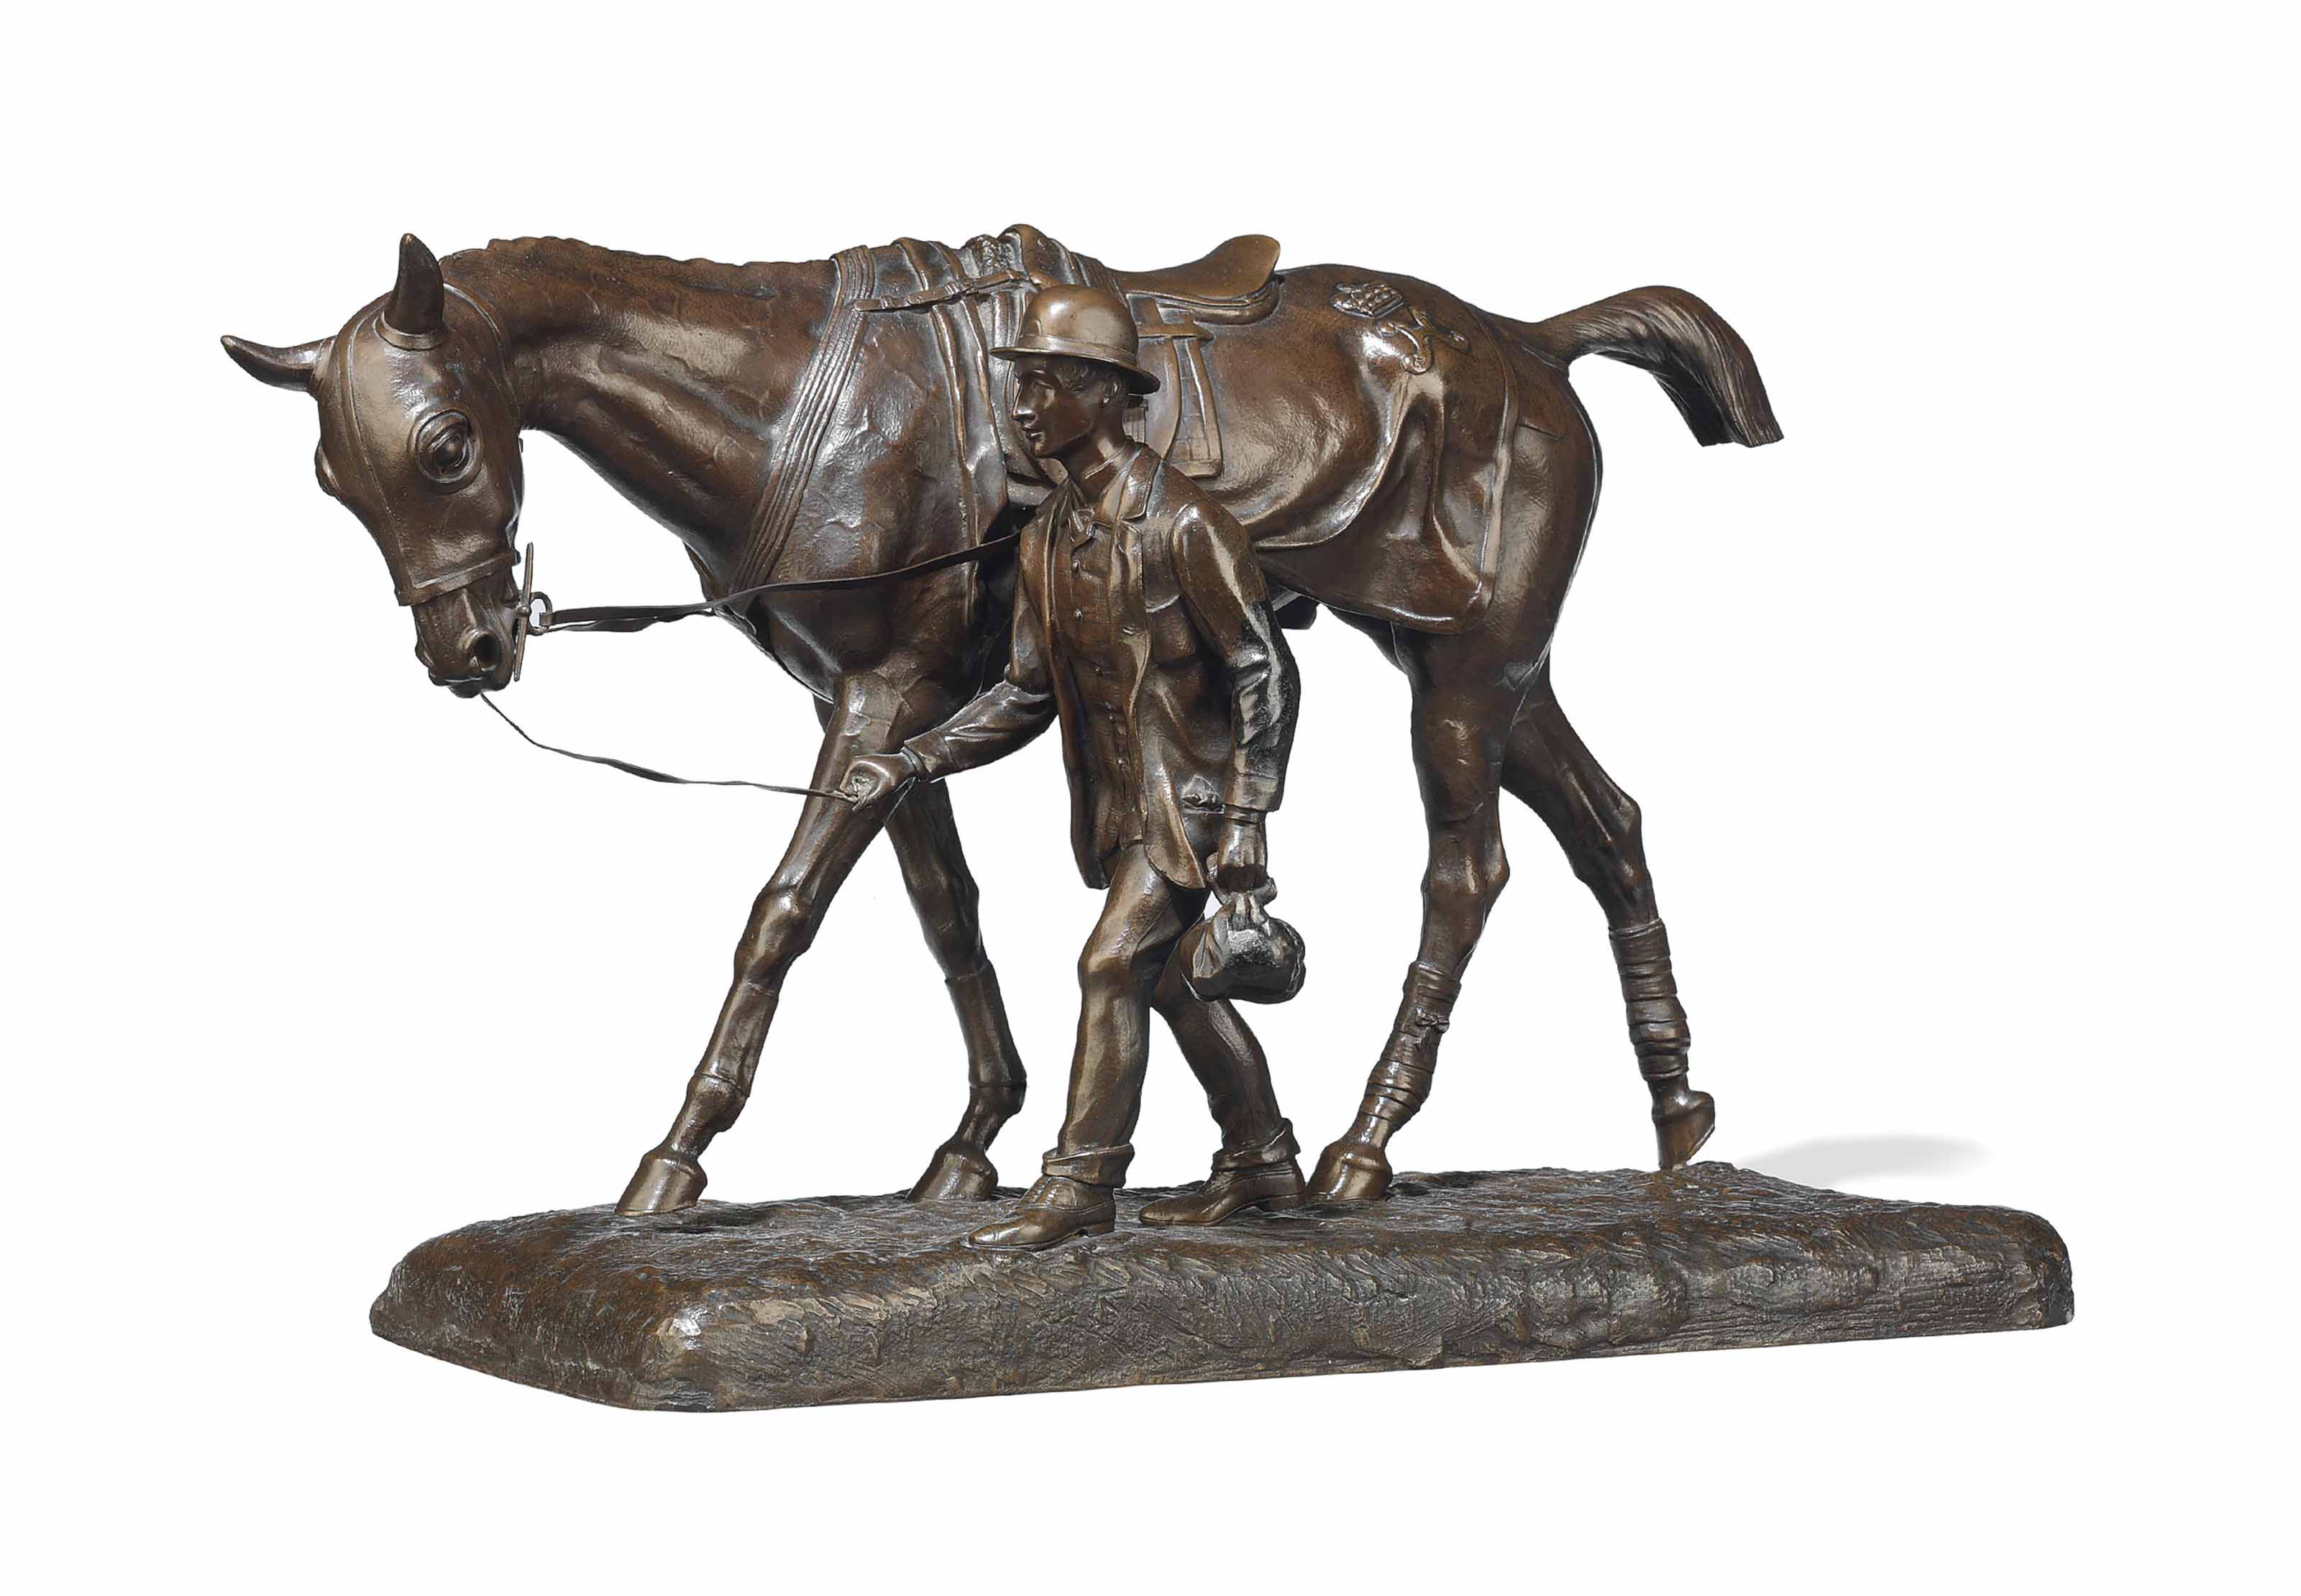 A FRENCH BRONZE EQUESTRIAN GROUP ENTITLED 'CHEVAL MARCHANT ET SON LAD' (WALKING HORSE AND GROOM)